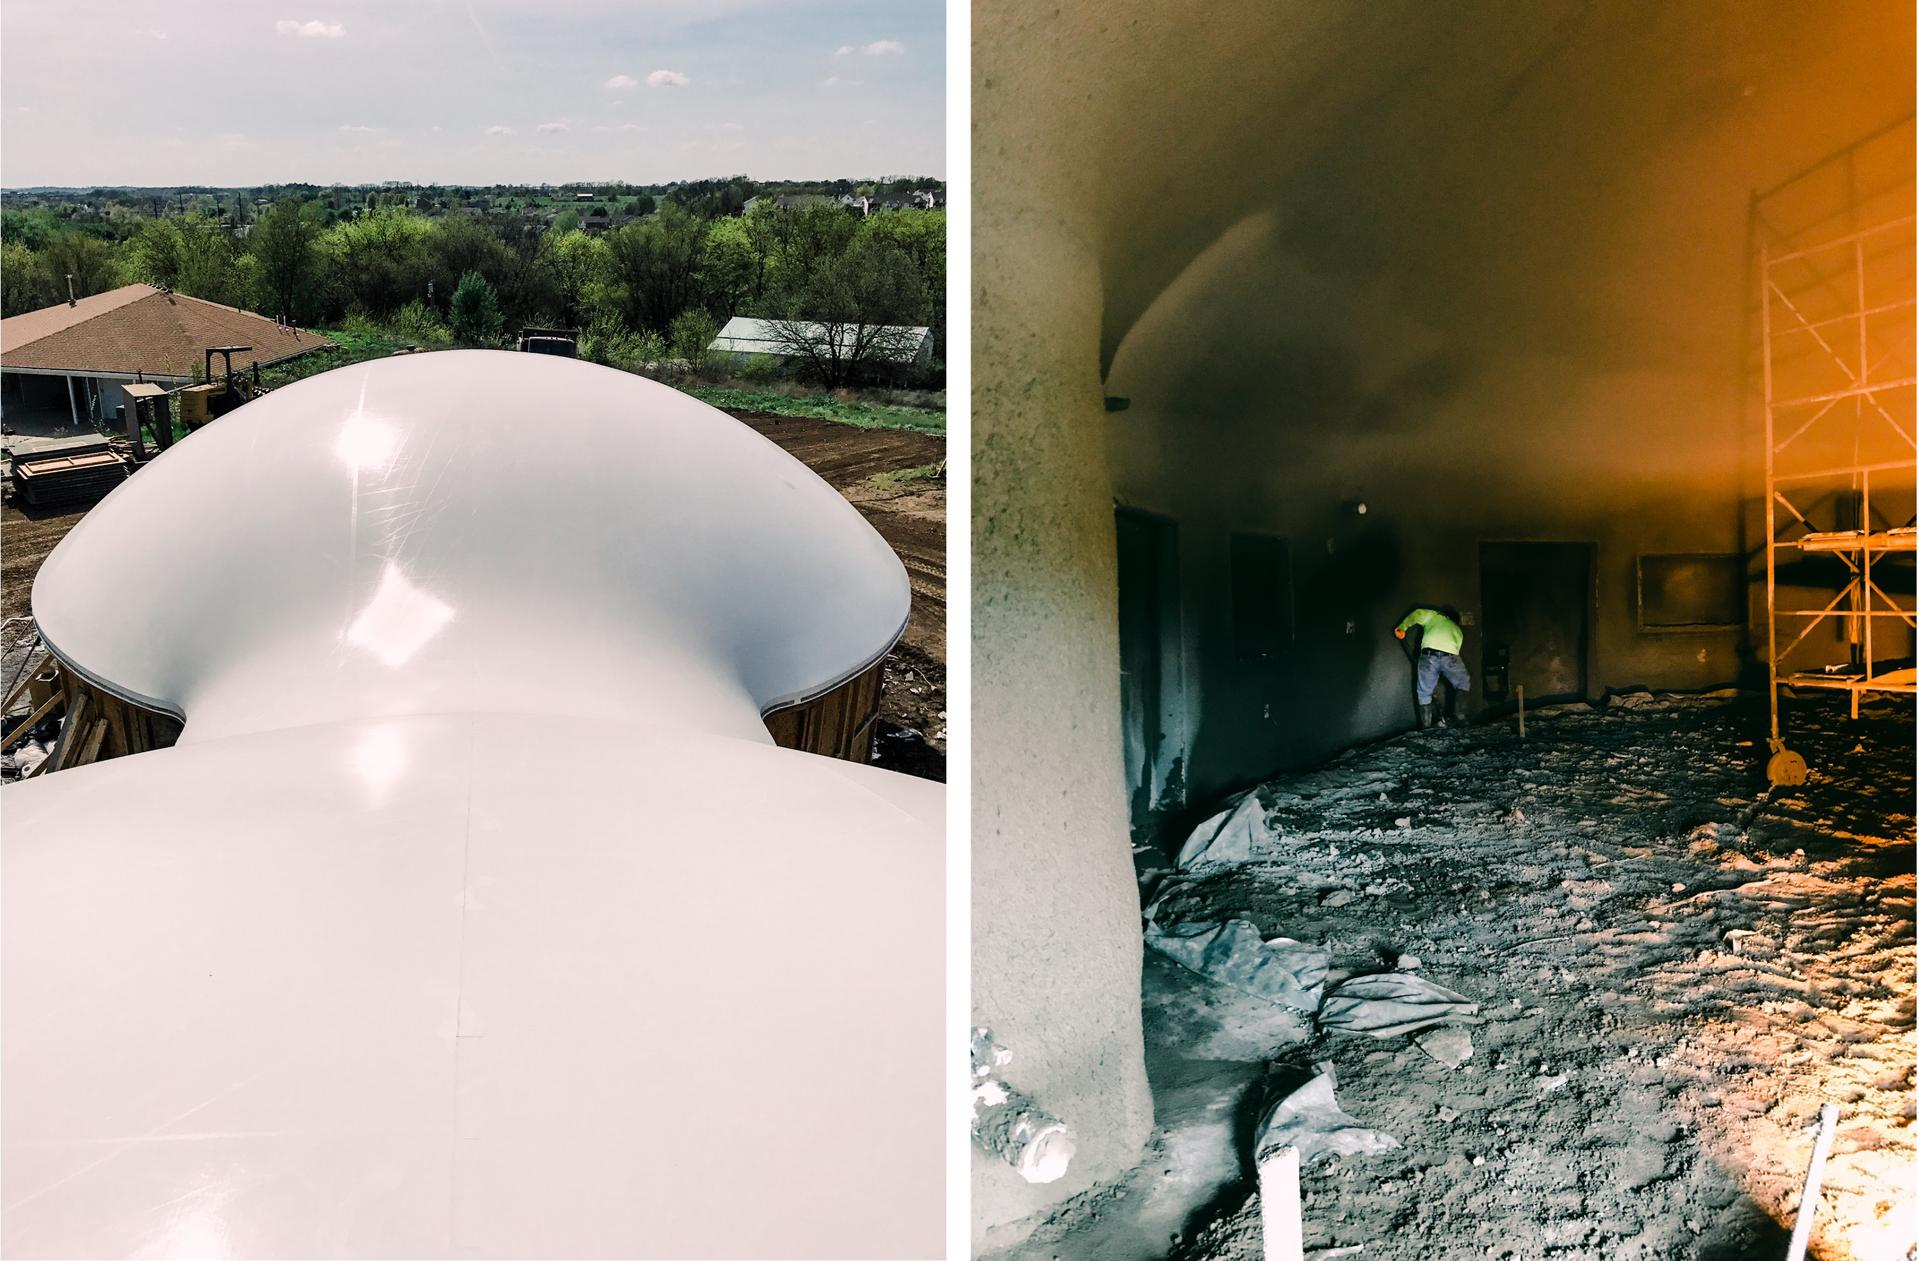 Two images show aerial view and interior construction of Shalom dome.